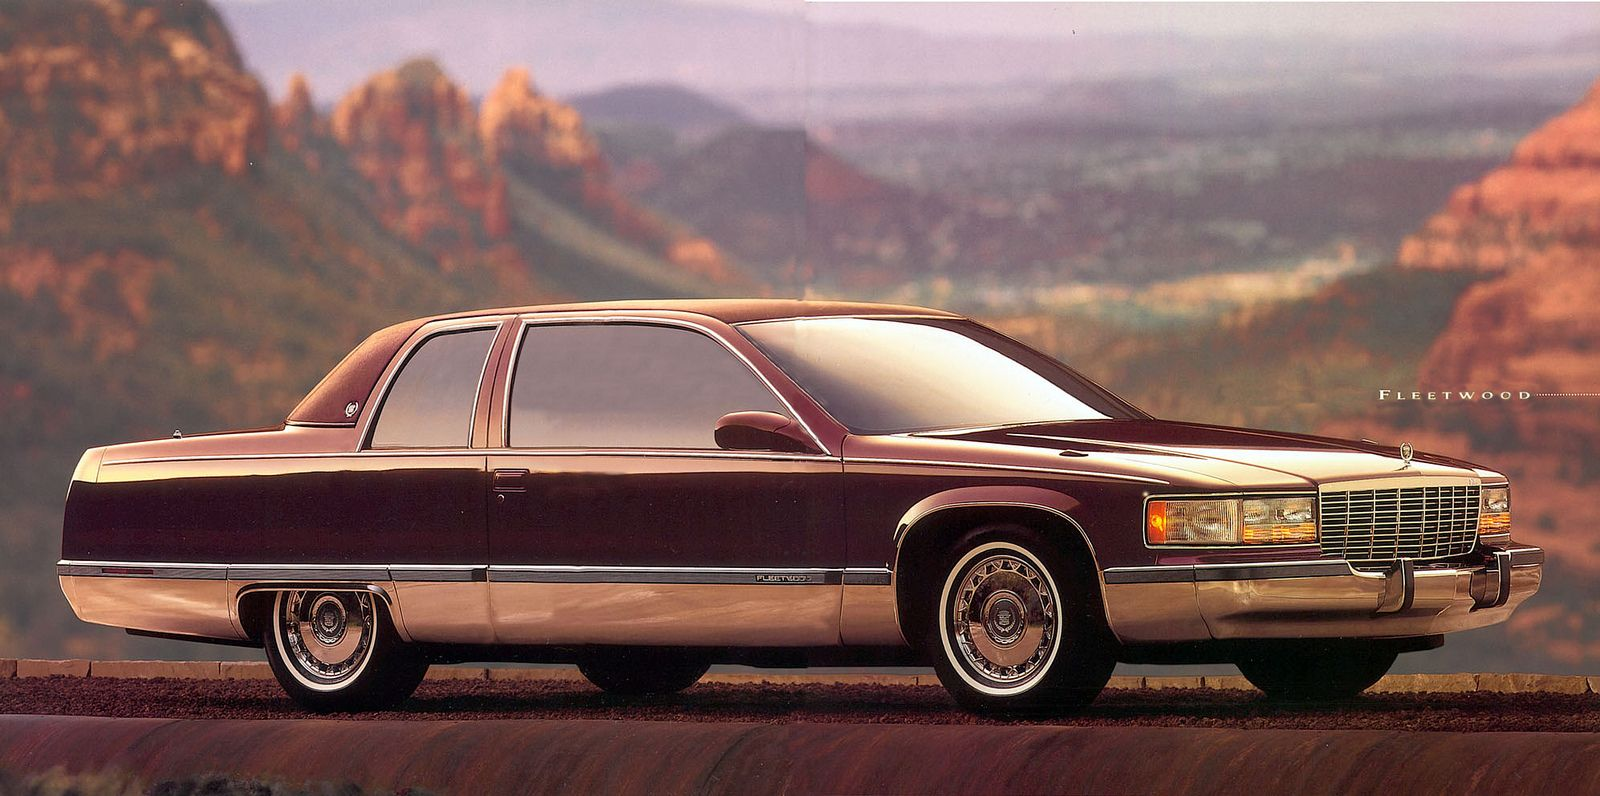 1996 cadillac fleetwood with sunroof all i want for christmas pinterest cadillac fleetwood cadillac and cars